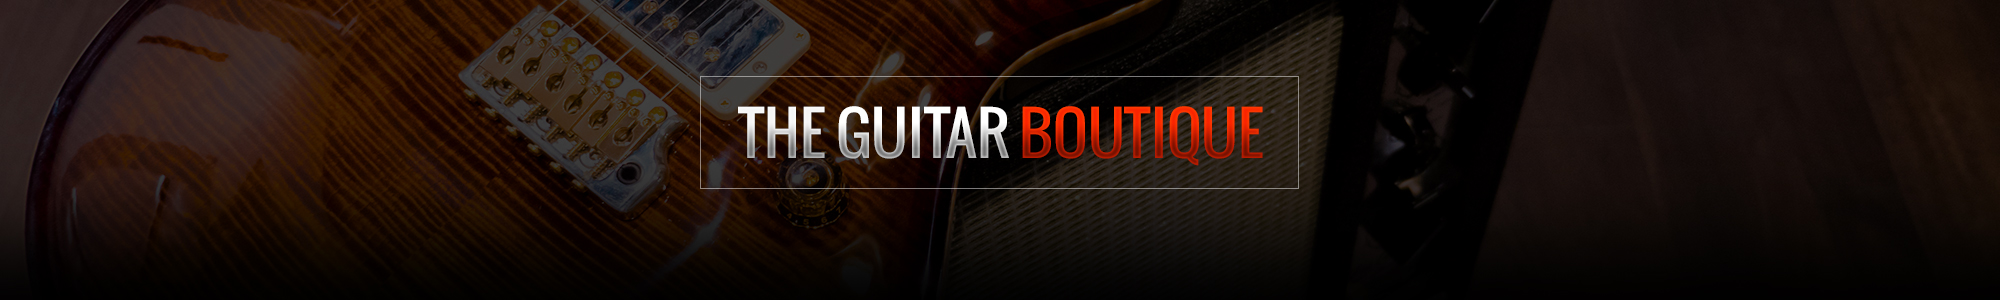 The Guitar Boutique